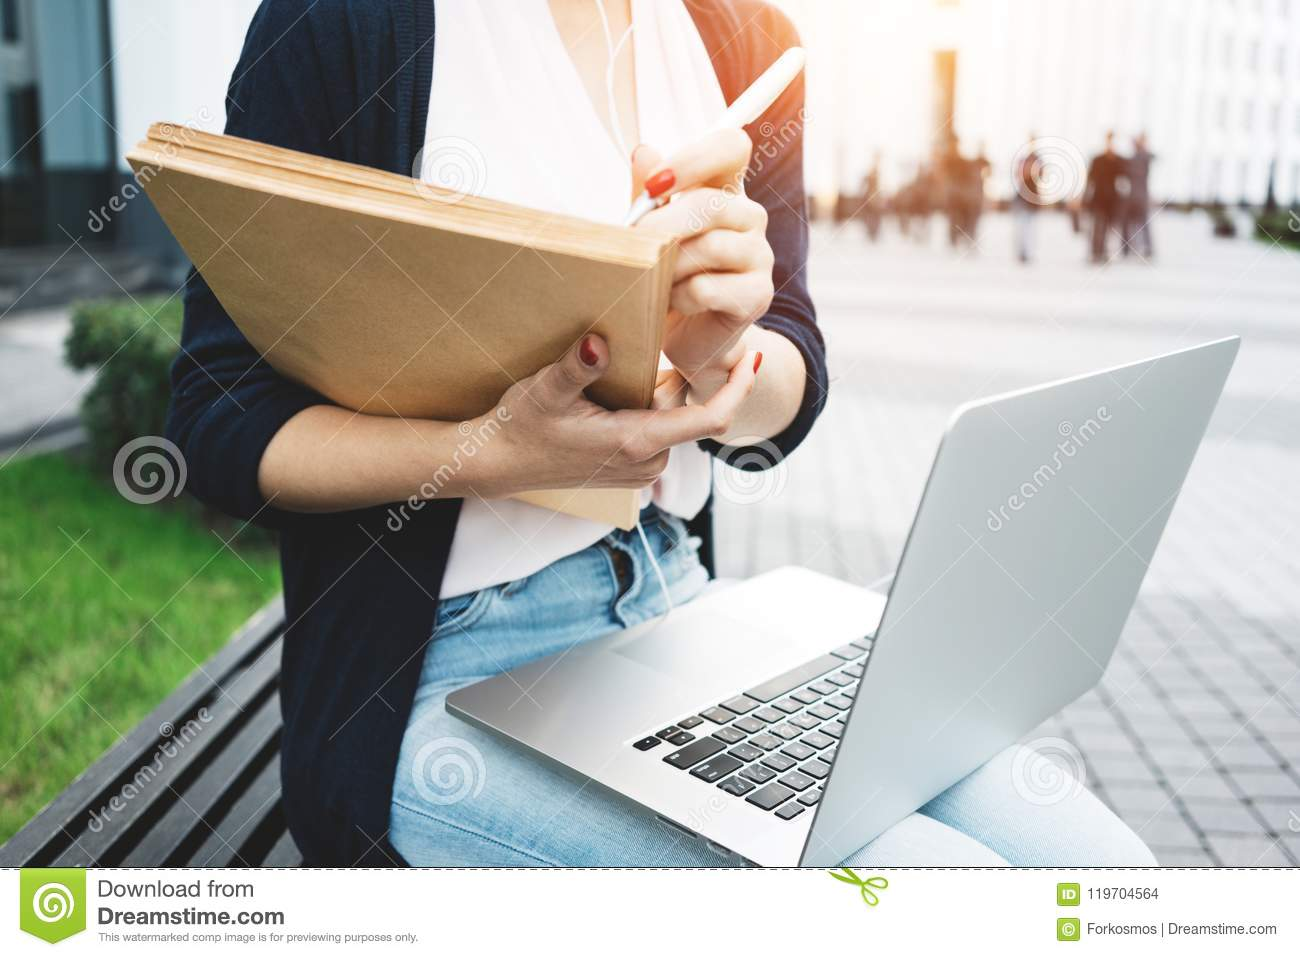 Young female freelancer making labor market research on modern laptop, sits on outdoors in urban street